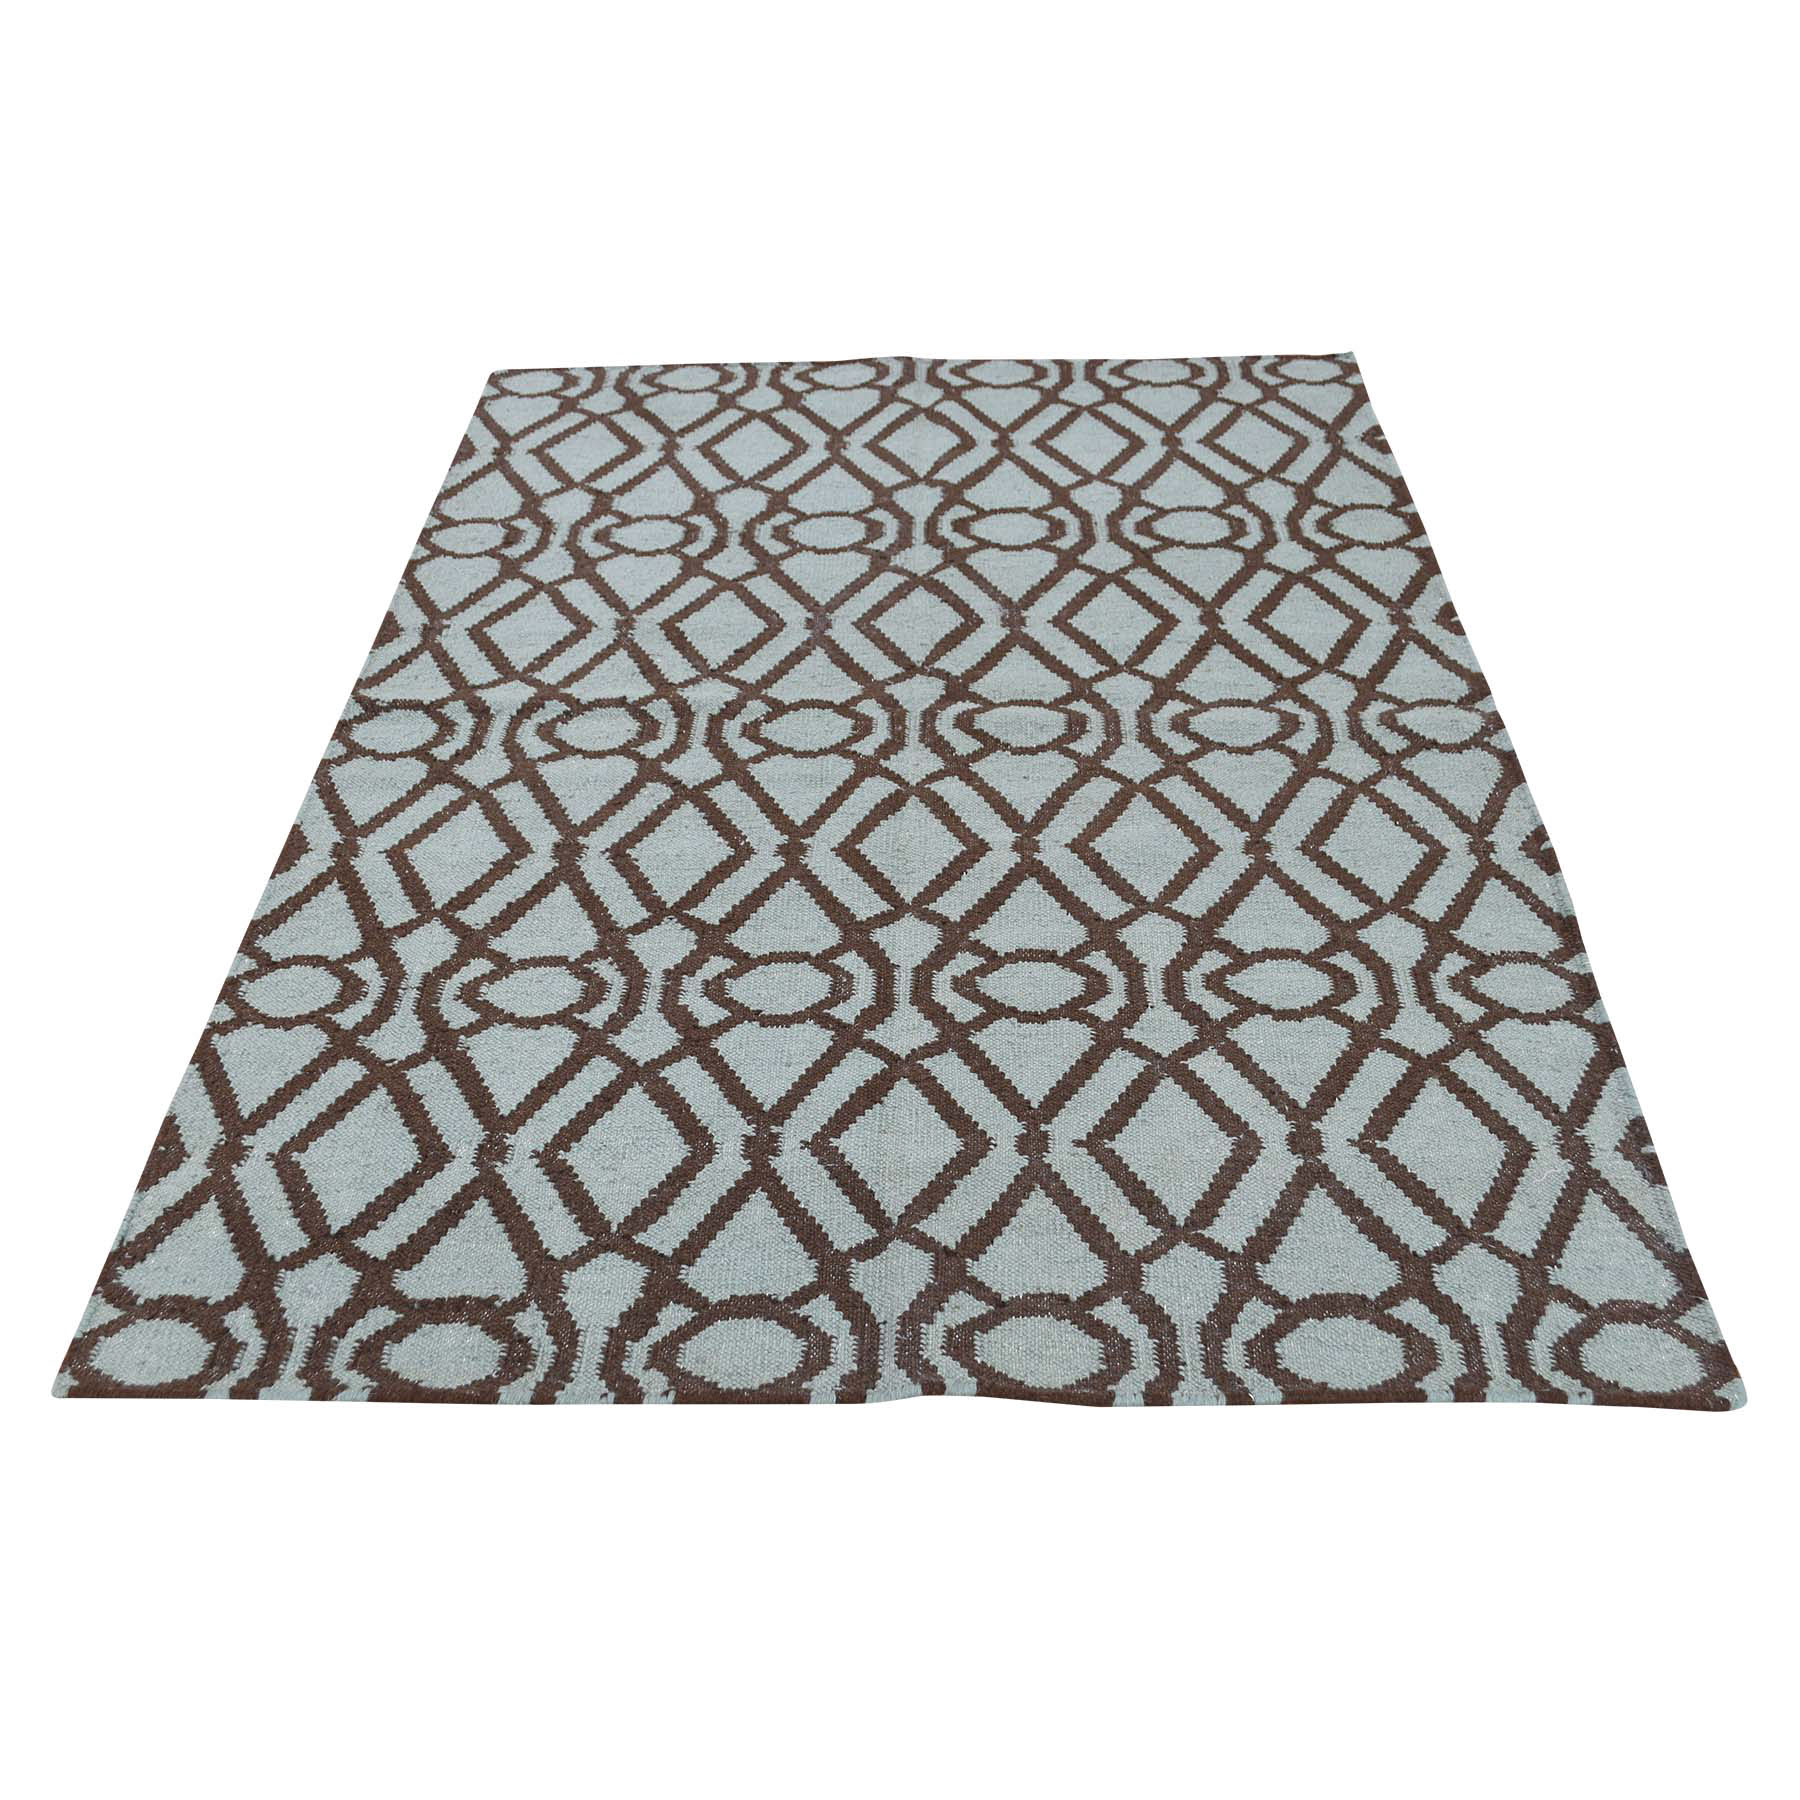 4'3''X5'10'' Hand Woven Light Green Durie Kilim Reversible Flat Weave Rug moac7866